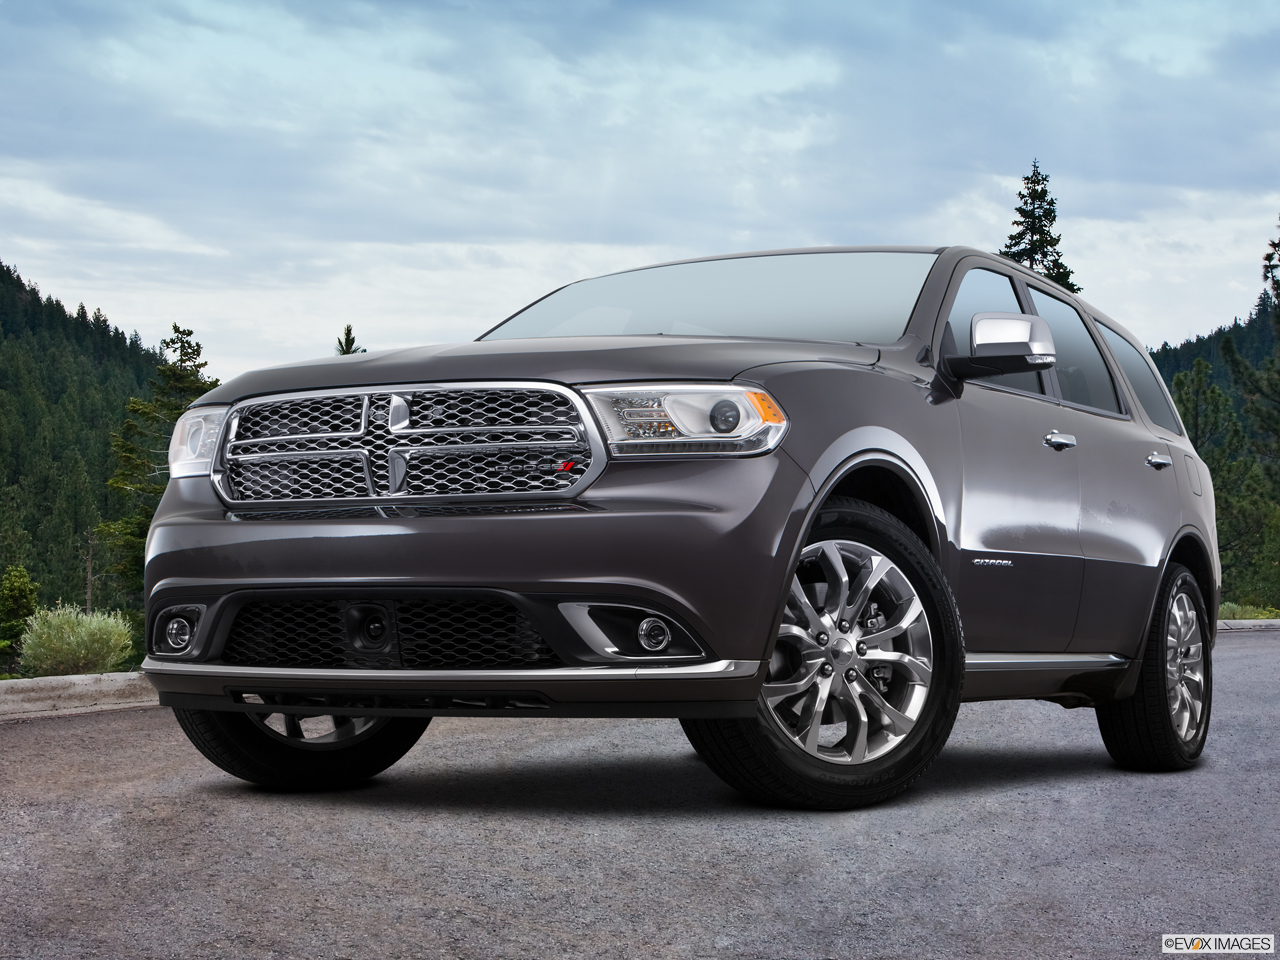 Exterior View Of 2017 Dodge Durango Chicago